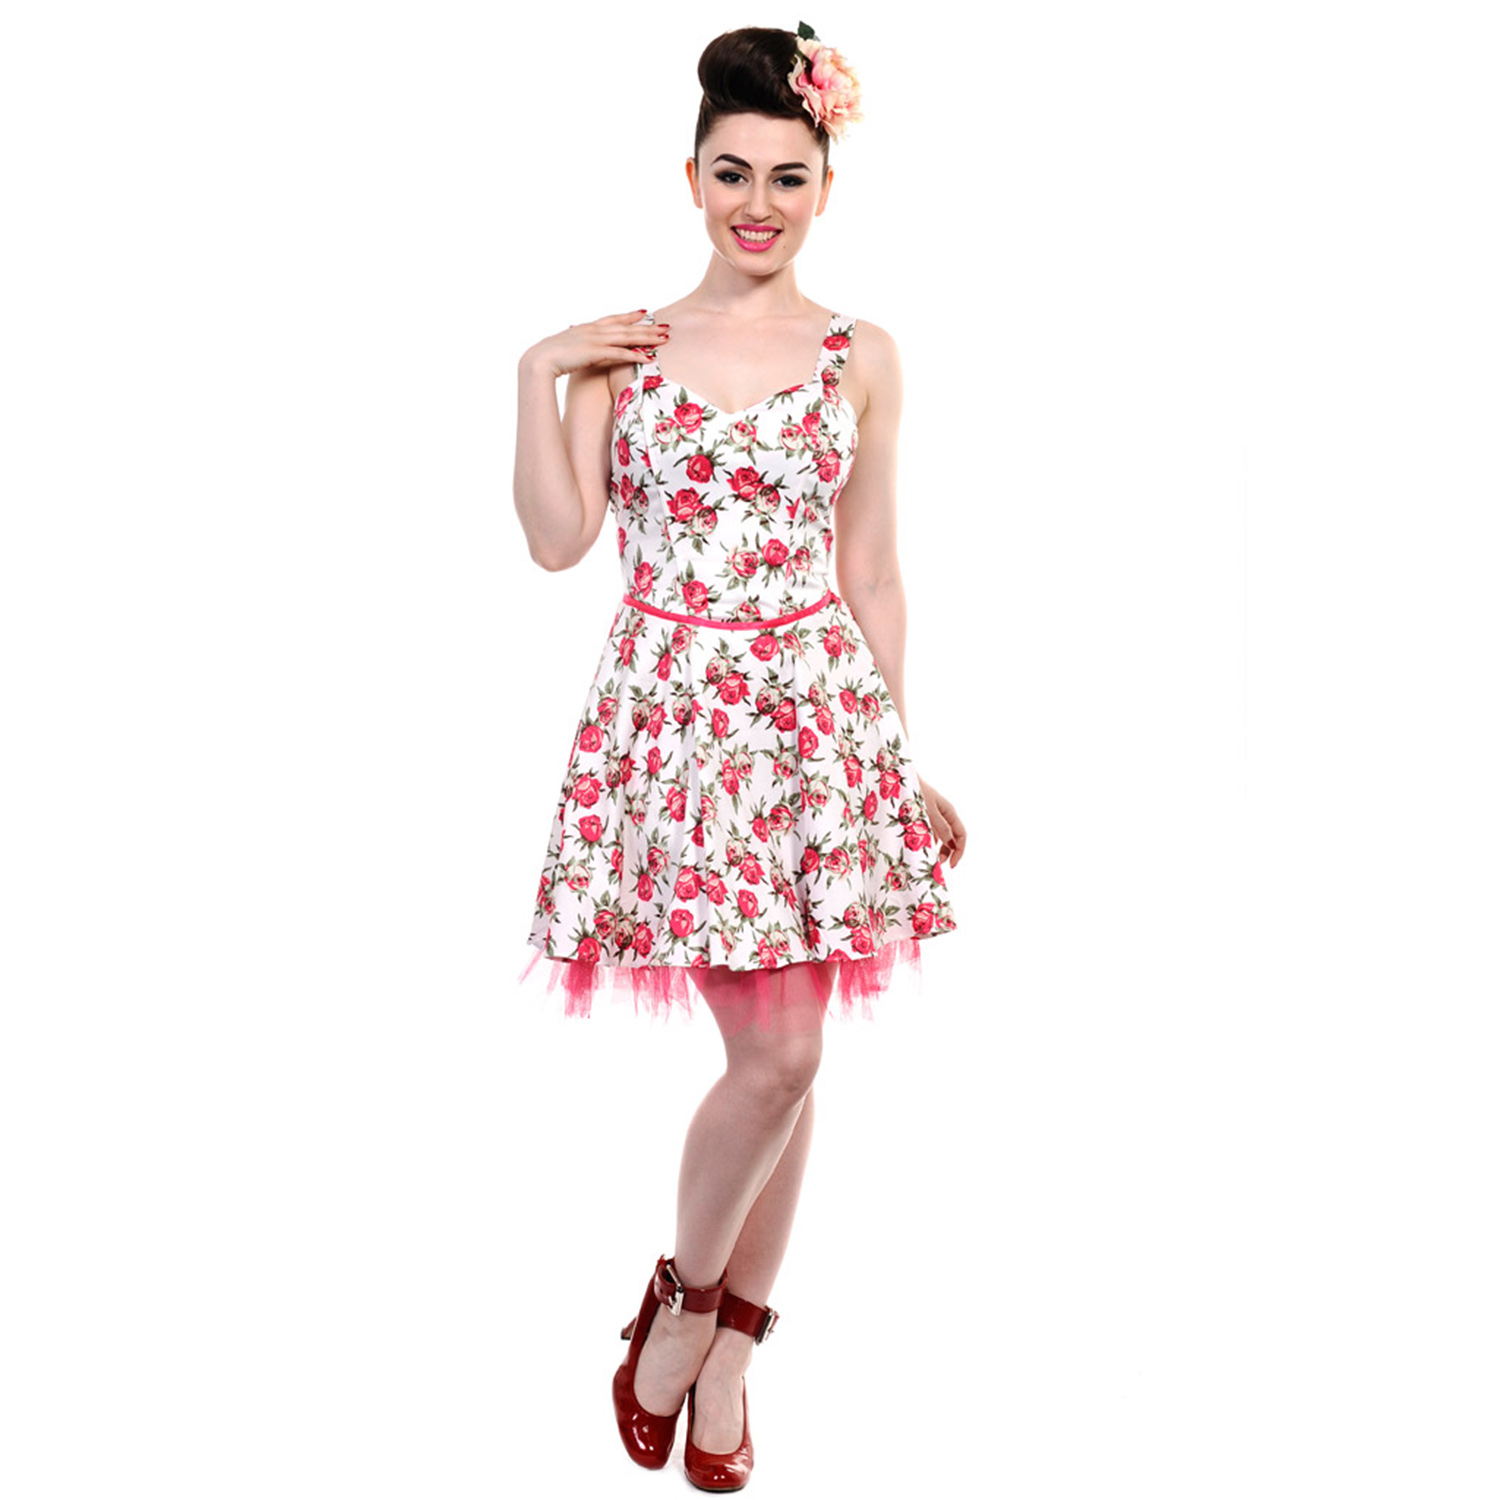 8f36b7d5a549 Banned New Ladies Black White Pink Floral Vintage 50s Rockabilly ...